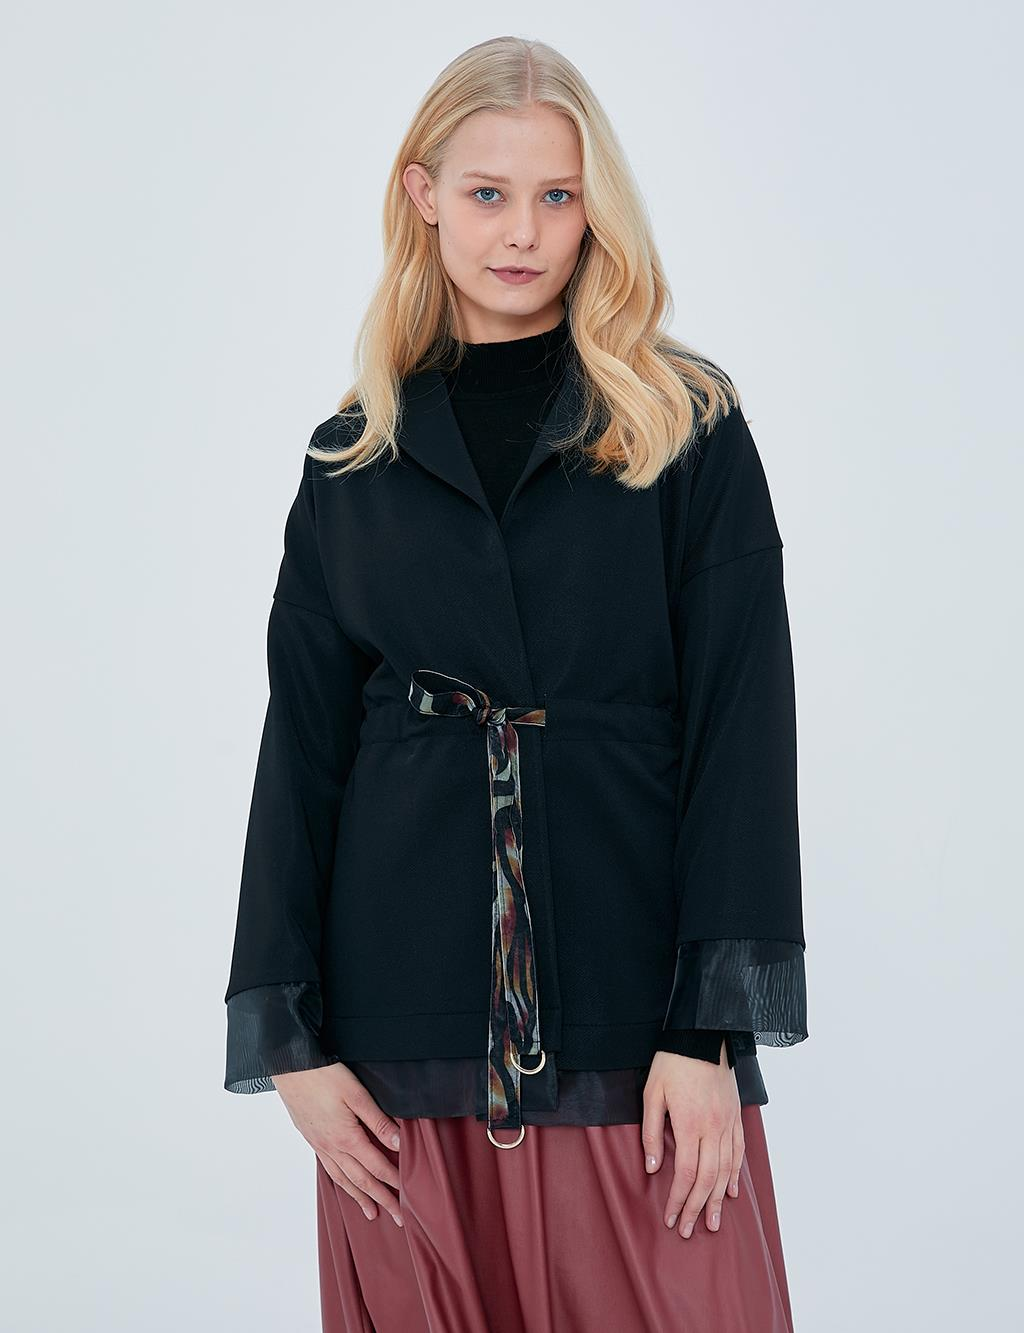 Organza Detailed Jacket Black A20 13092